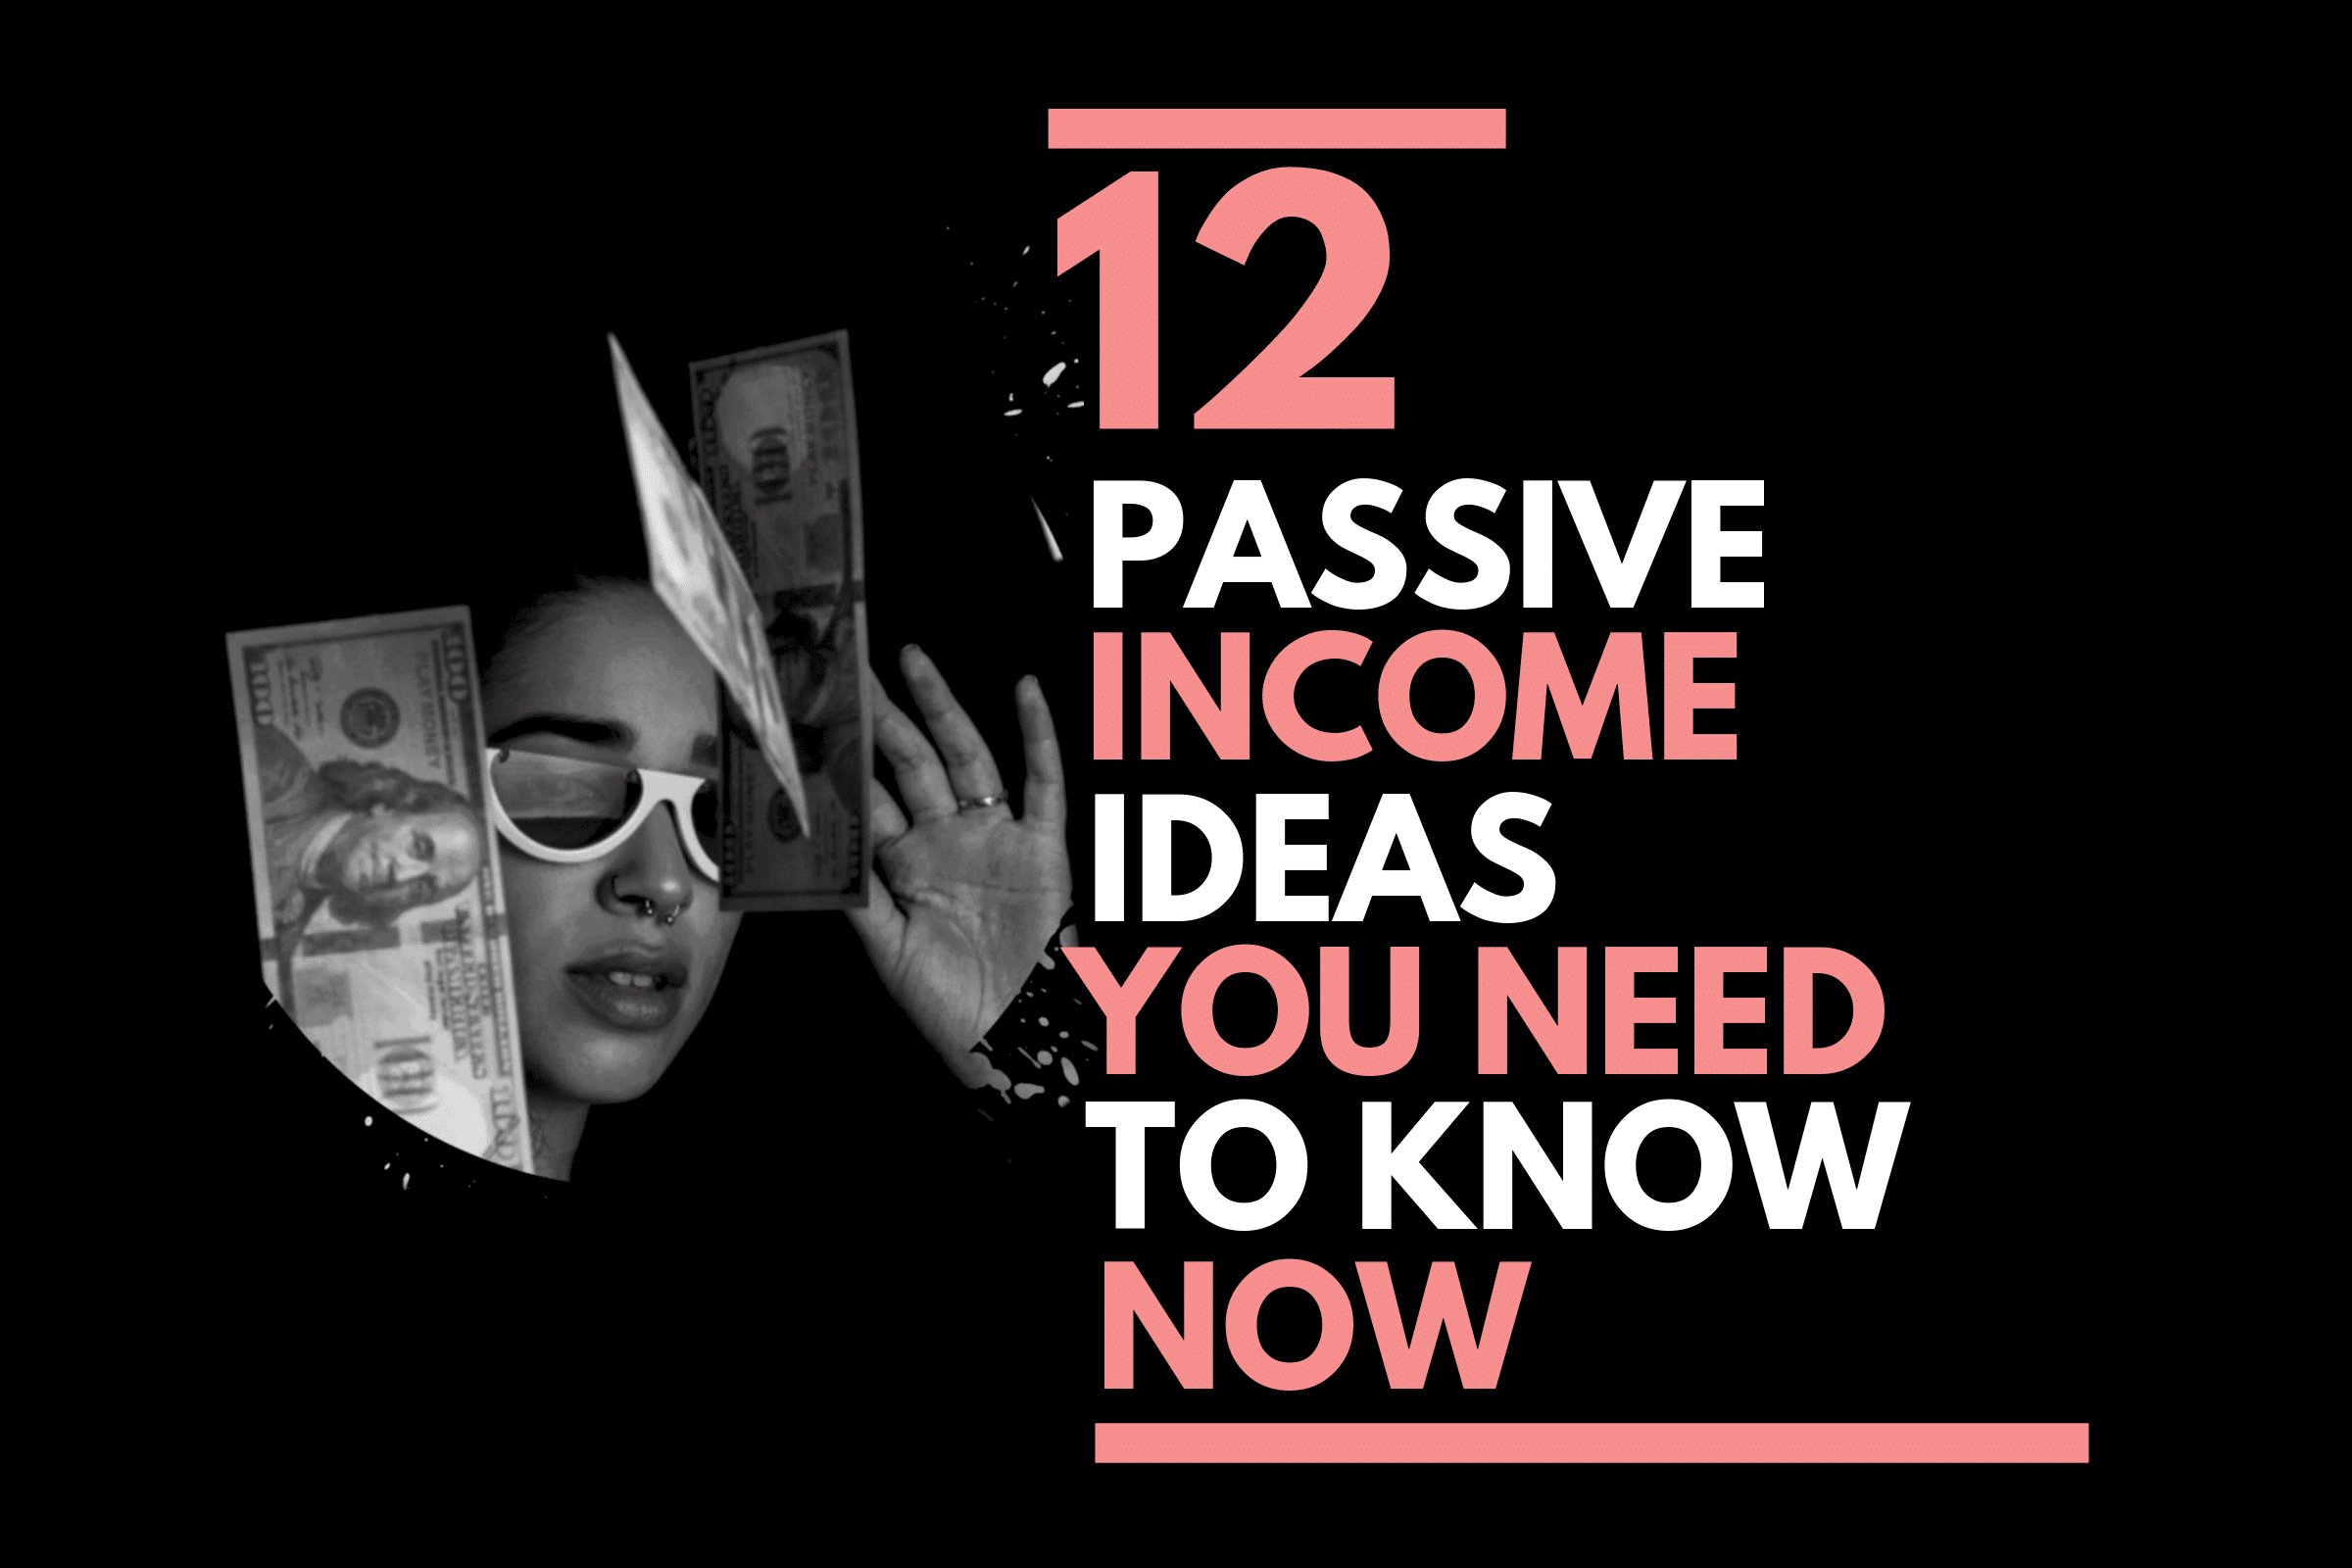 12-passive-income-ideas-you-need-to-know-now-